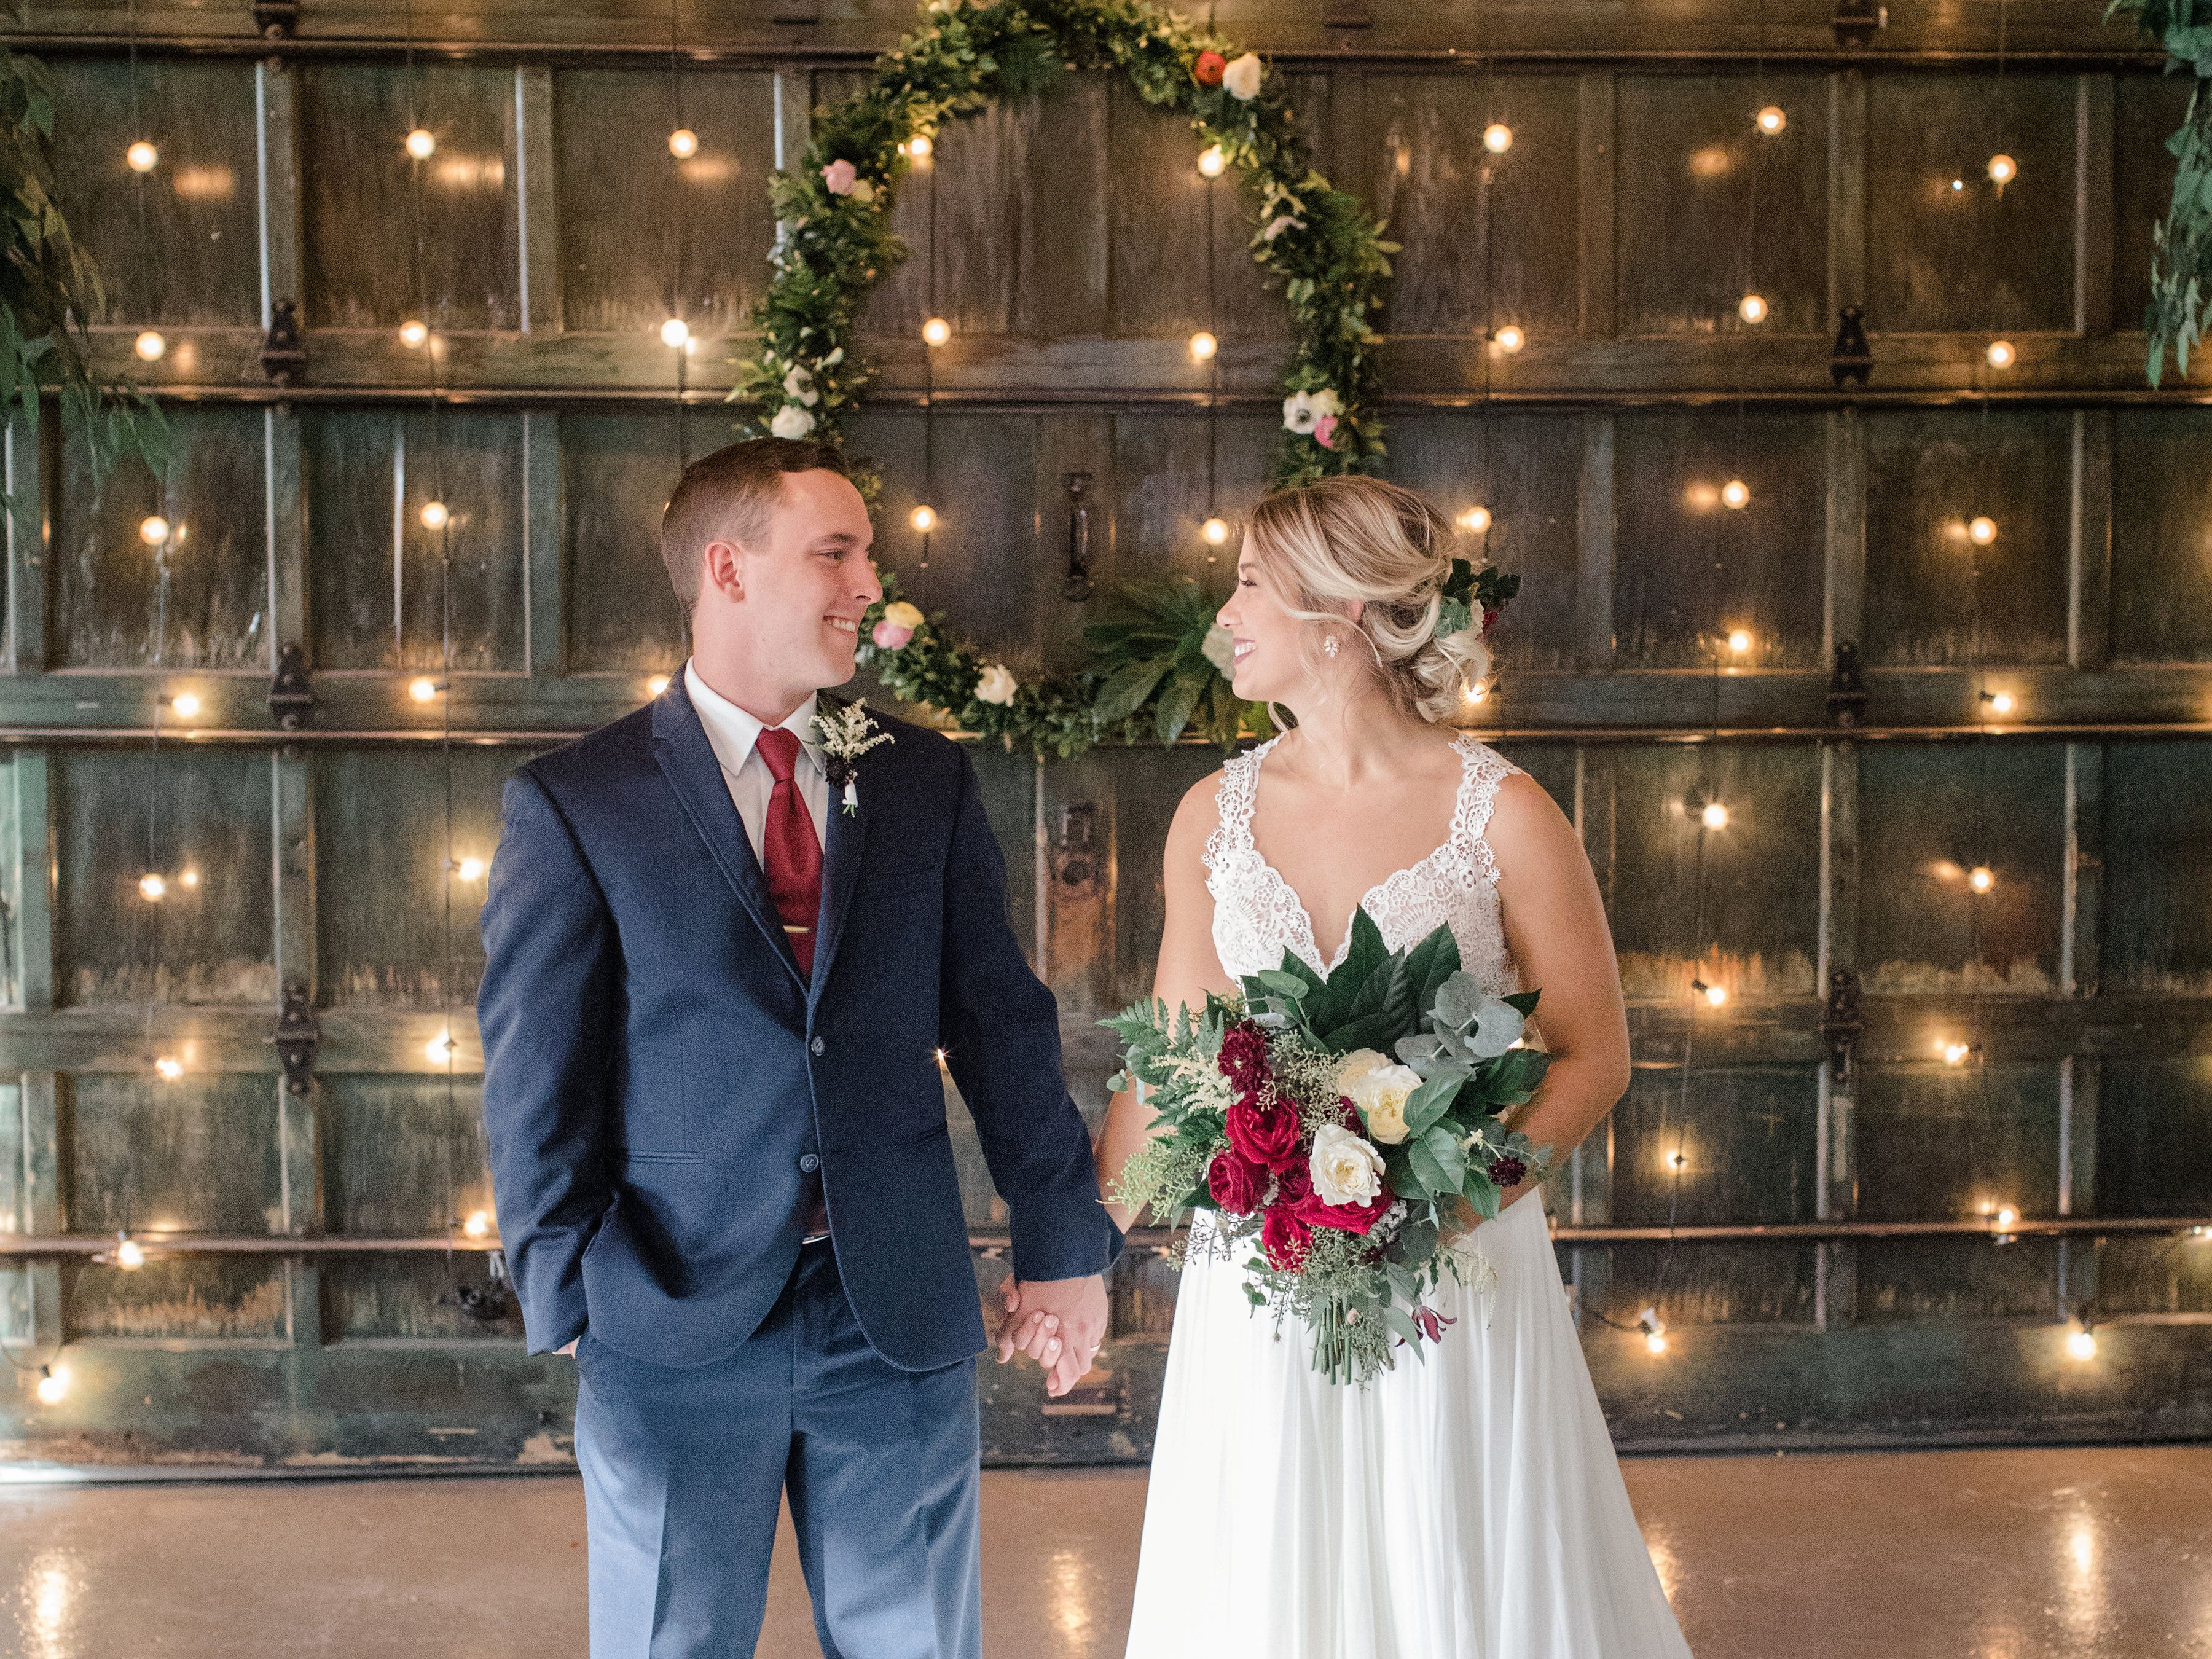 Michelle And Scott Had A Dreamy Wedding At Soho South Their Wedding Was Filled With Family And Friends Along With Savannah Wedding Wedding Candle Lit Wedding